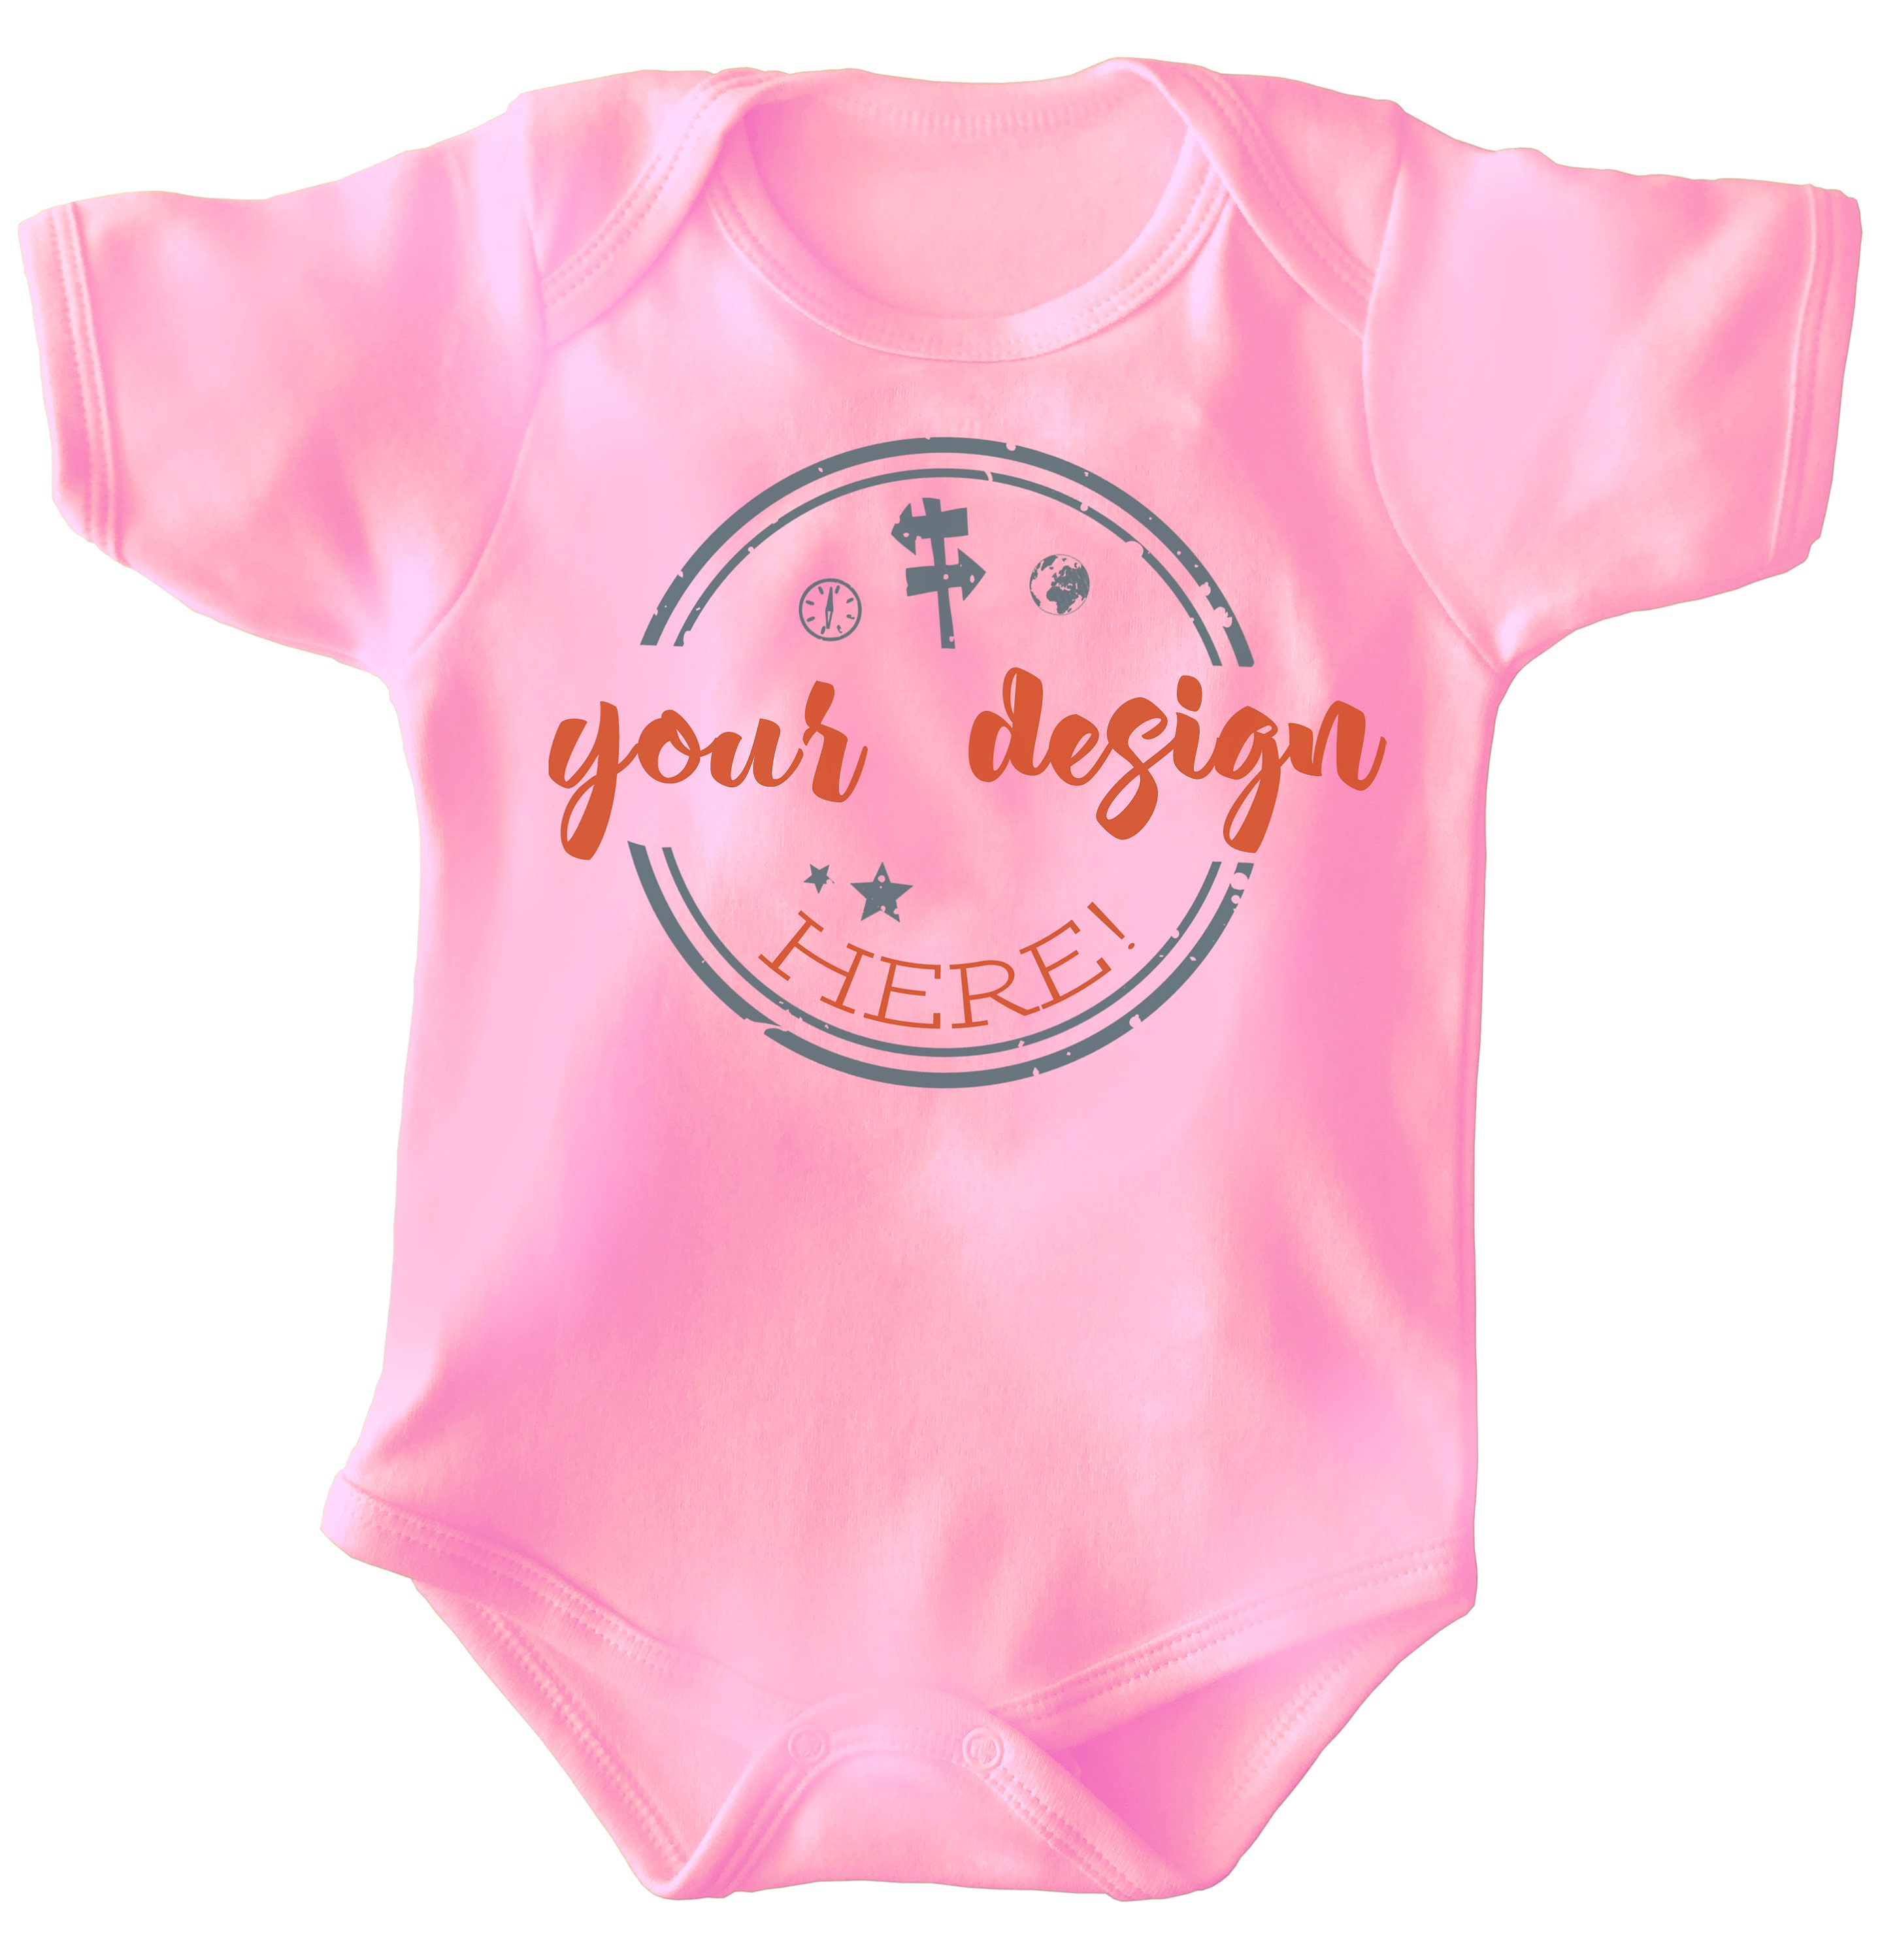 pink onesie mockup Baby onesie mockup onesie mock up Baby